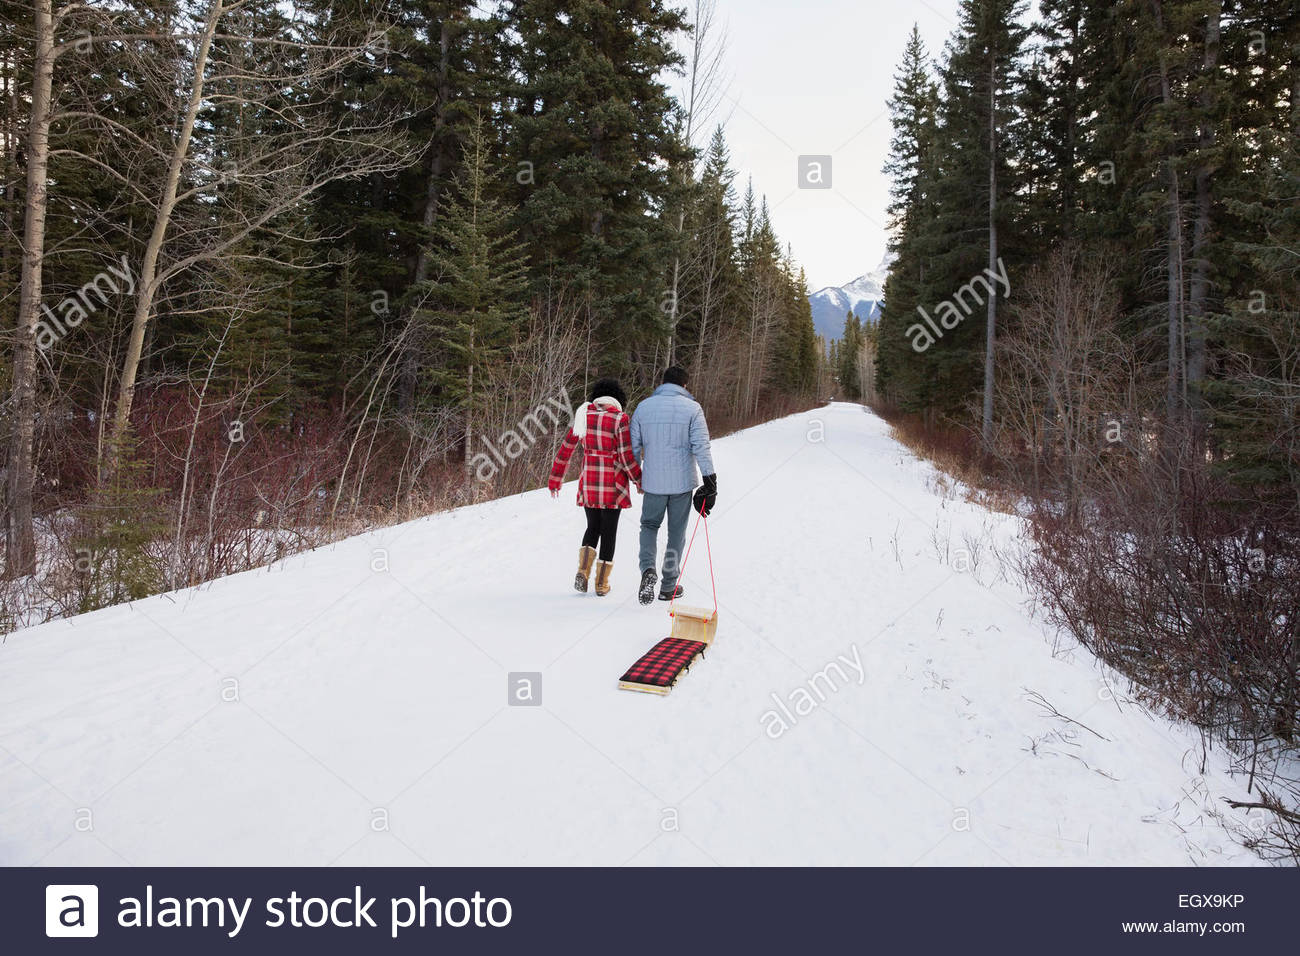 Couple pulling sled down snowy lane in woods - Stock Image